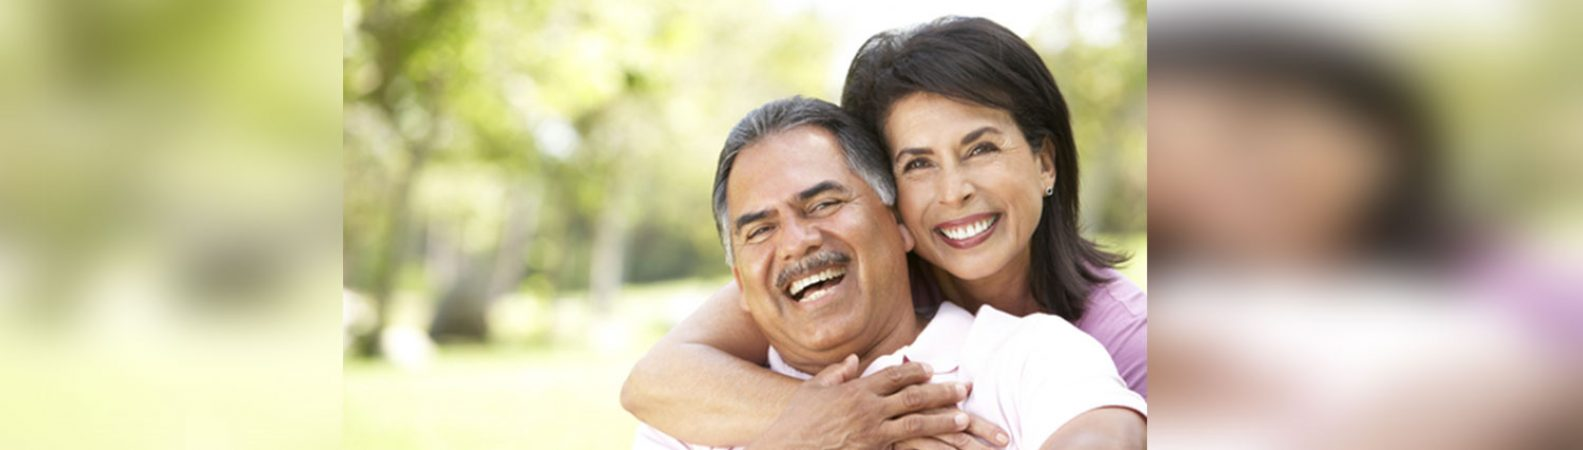 Enhance Your Smile With Dental Implants